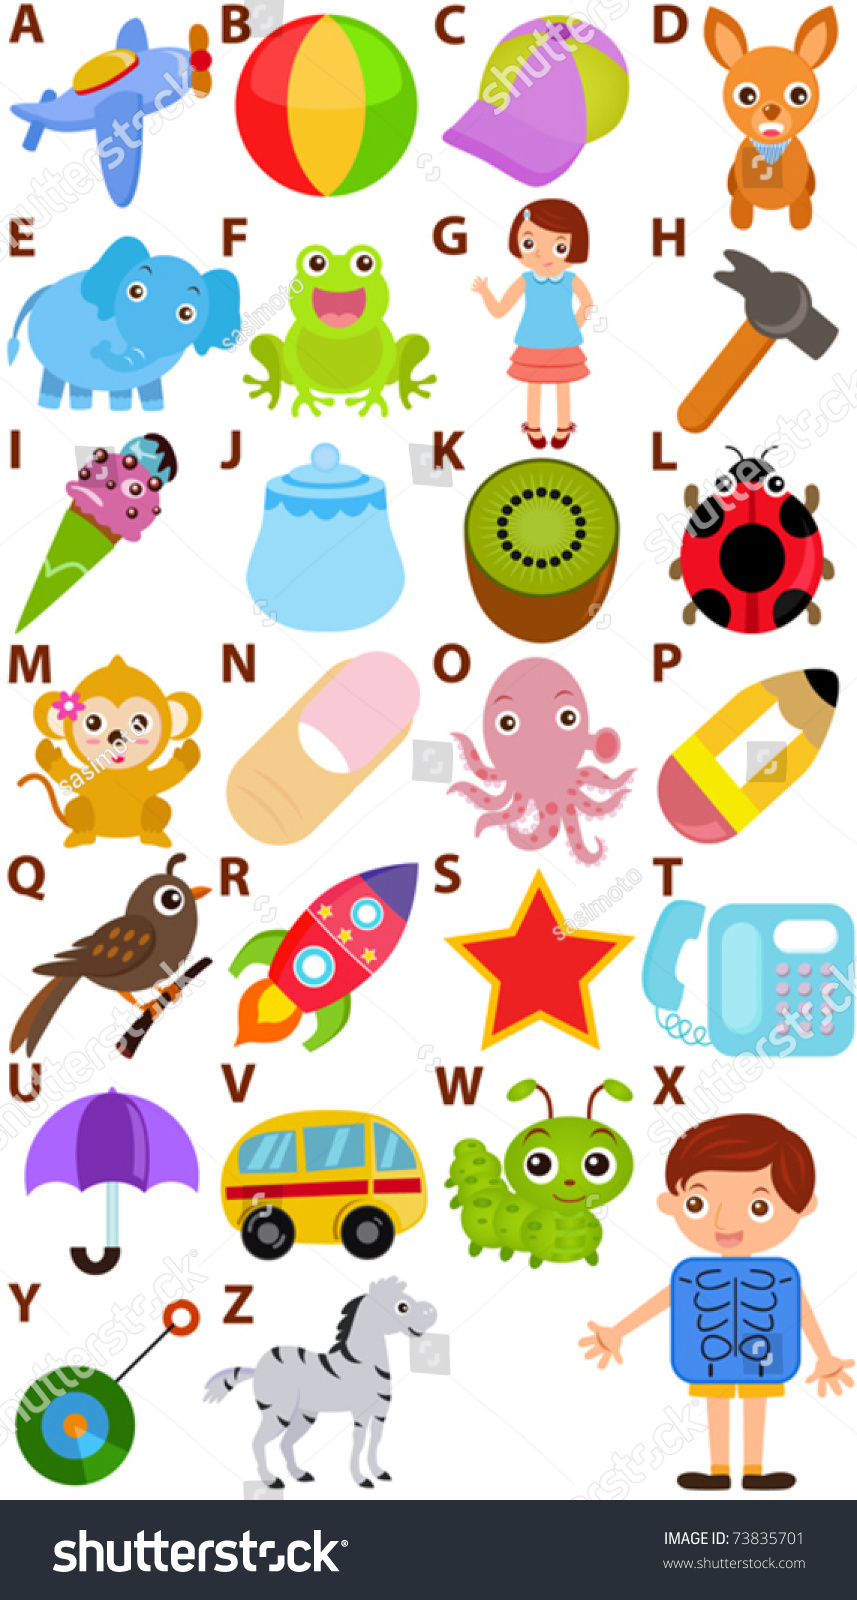 Make Pictures With Alphabets 12